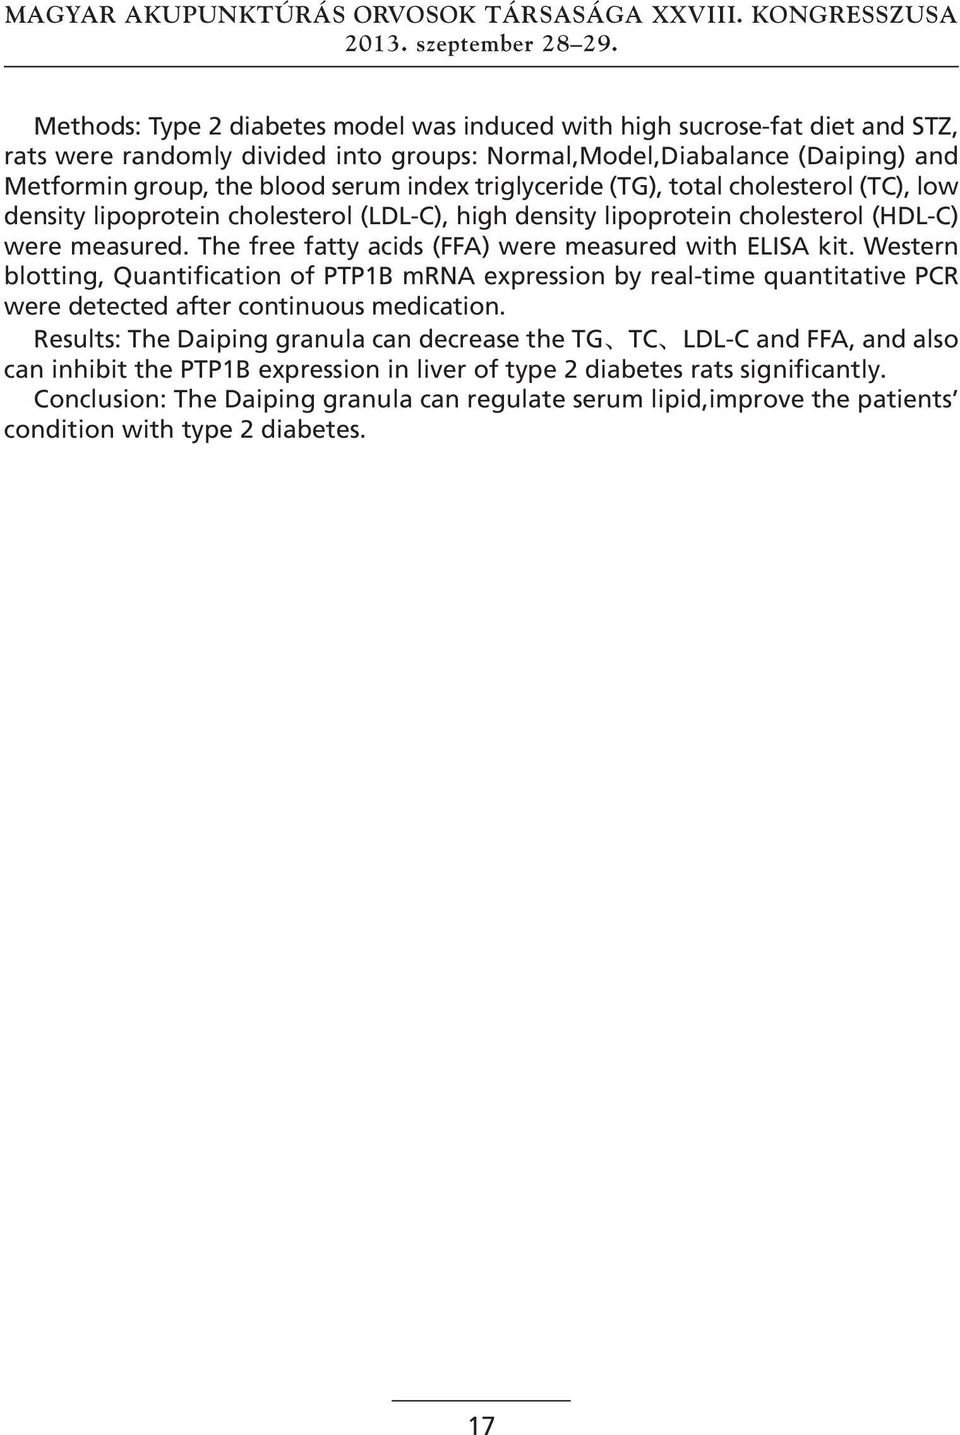 The free fatty acids (FFA) were measured with ELISA kit. Western blotting, Quantification of PTP1B mrna expression by real-time quantitative PCR were detected after continuous medication.